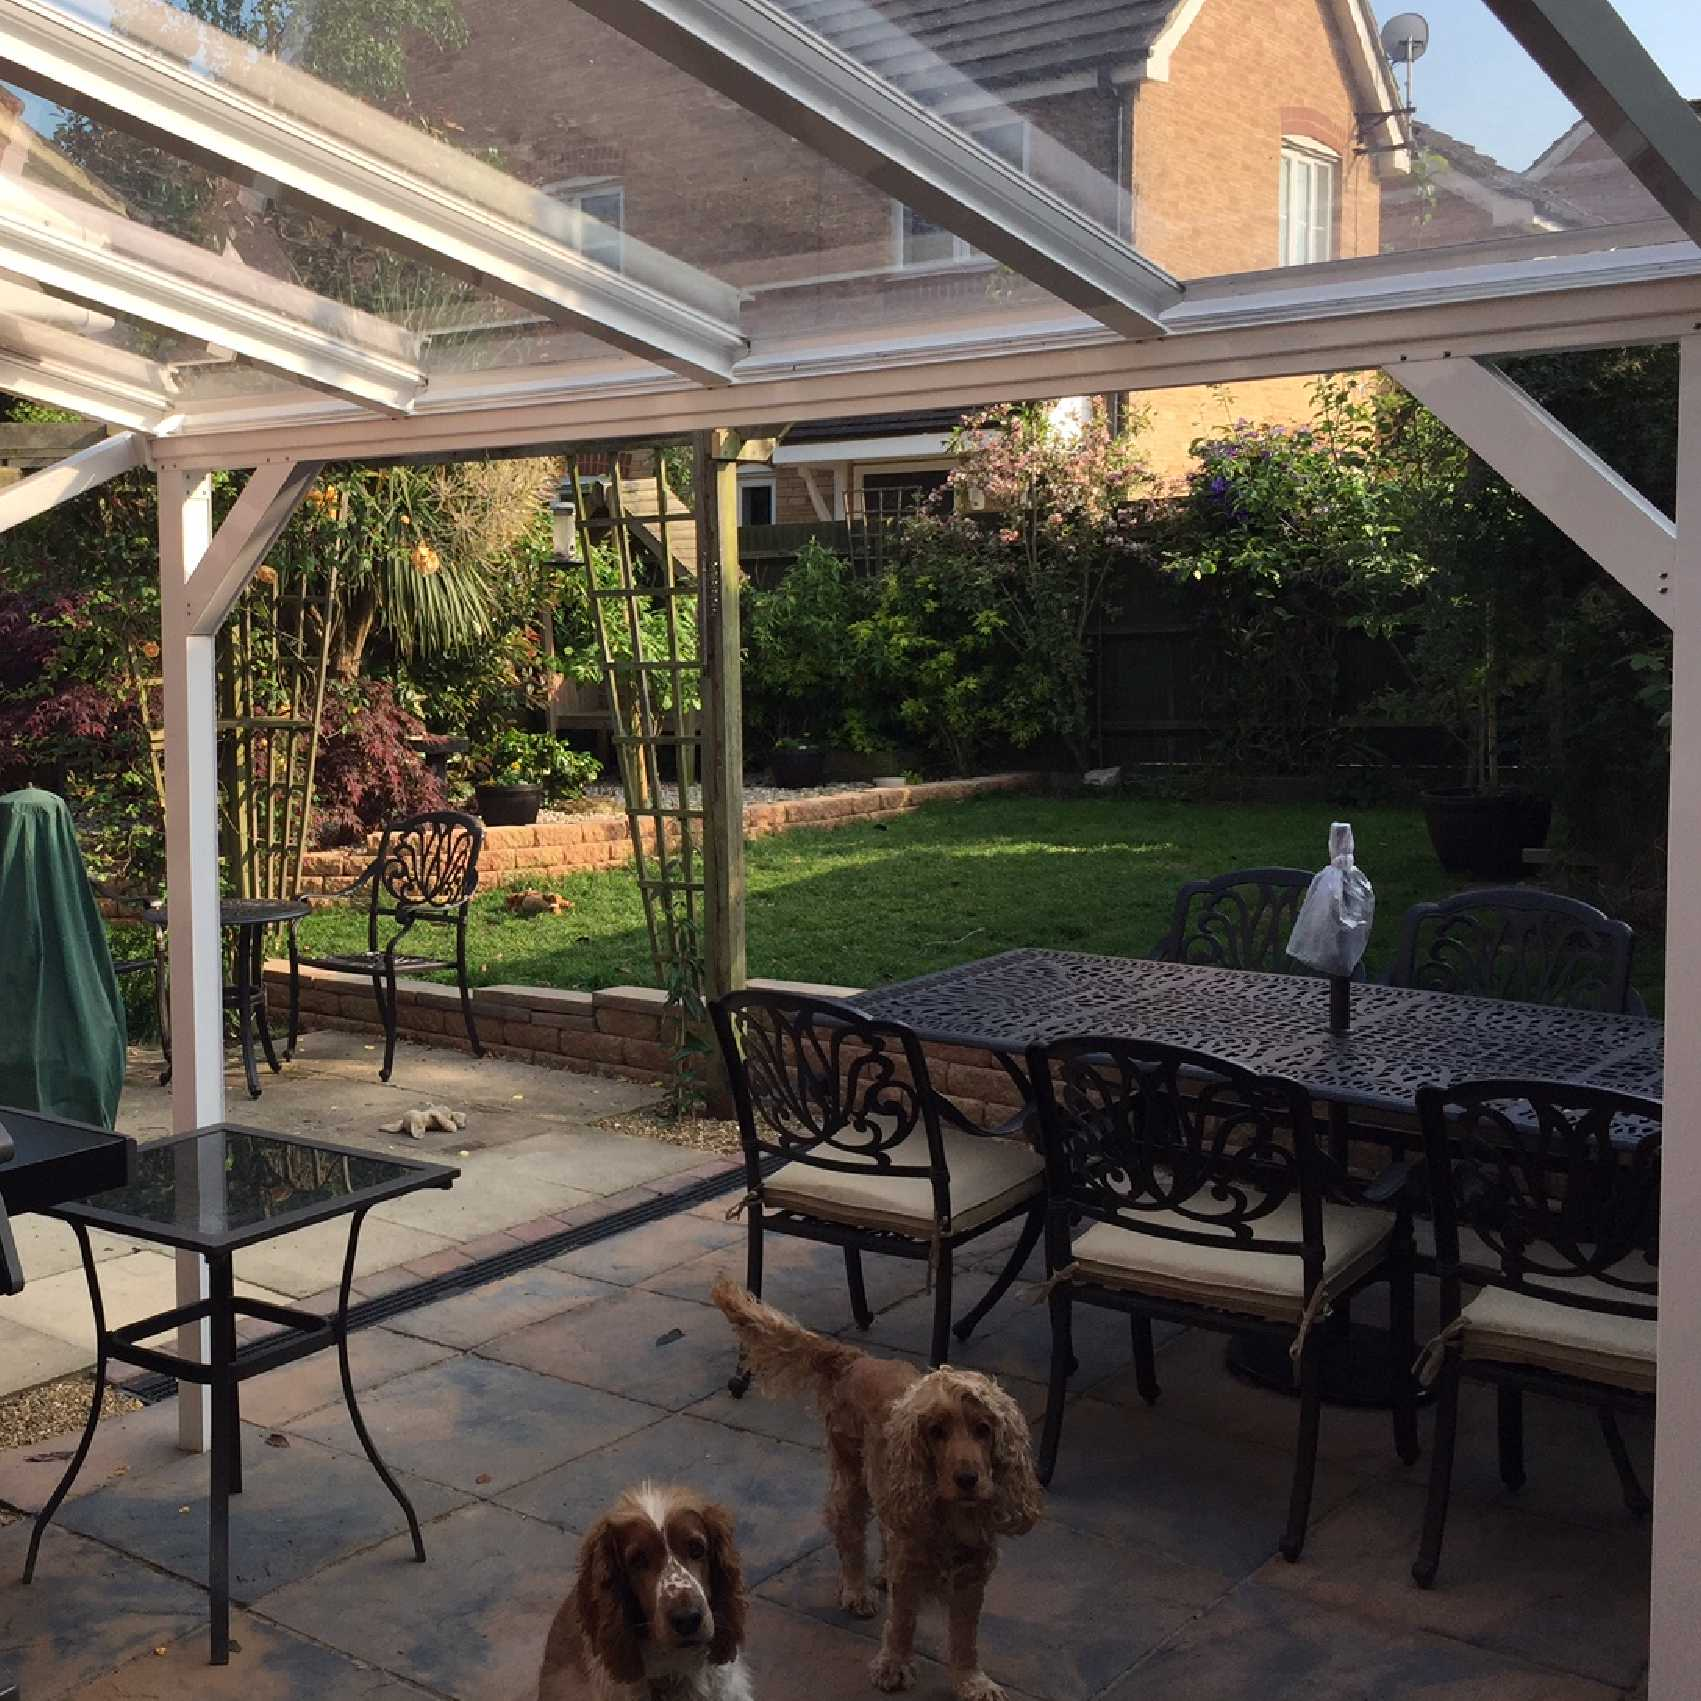 Affordable Omega Smart White Lean-To Canopy with 6mm Glass Clear Plate Polycarbonate Glazing - 7.7m (W) x 2.0m (P), (4) Supporting Posts